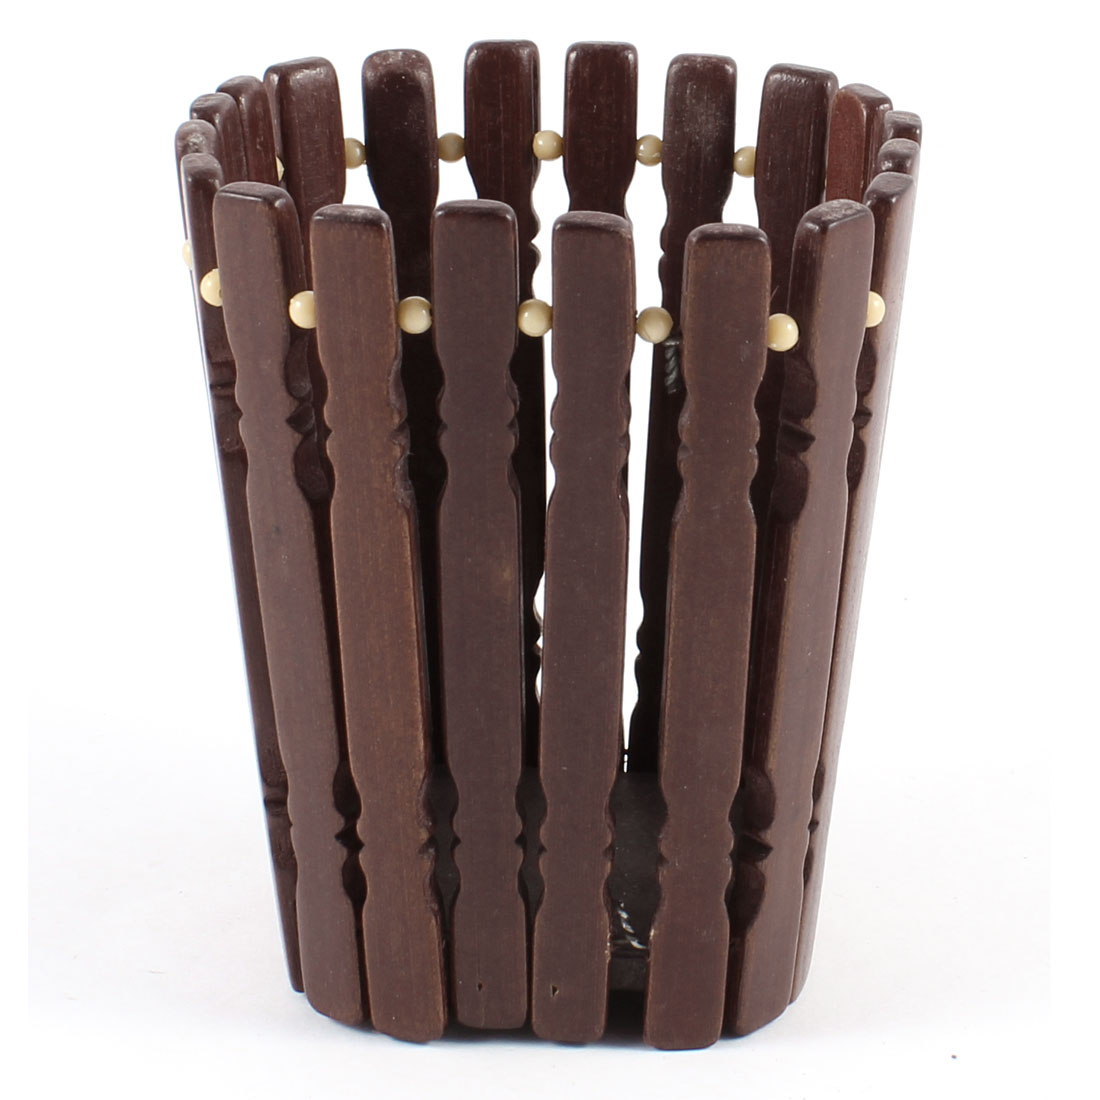 Household Beige Plastic Beads Accent Bamboo Pen Holder Organizer Brown